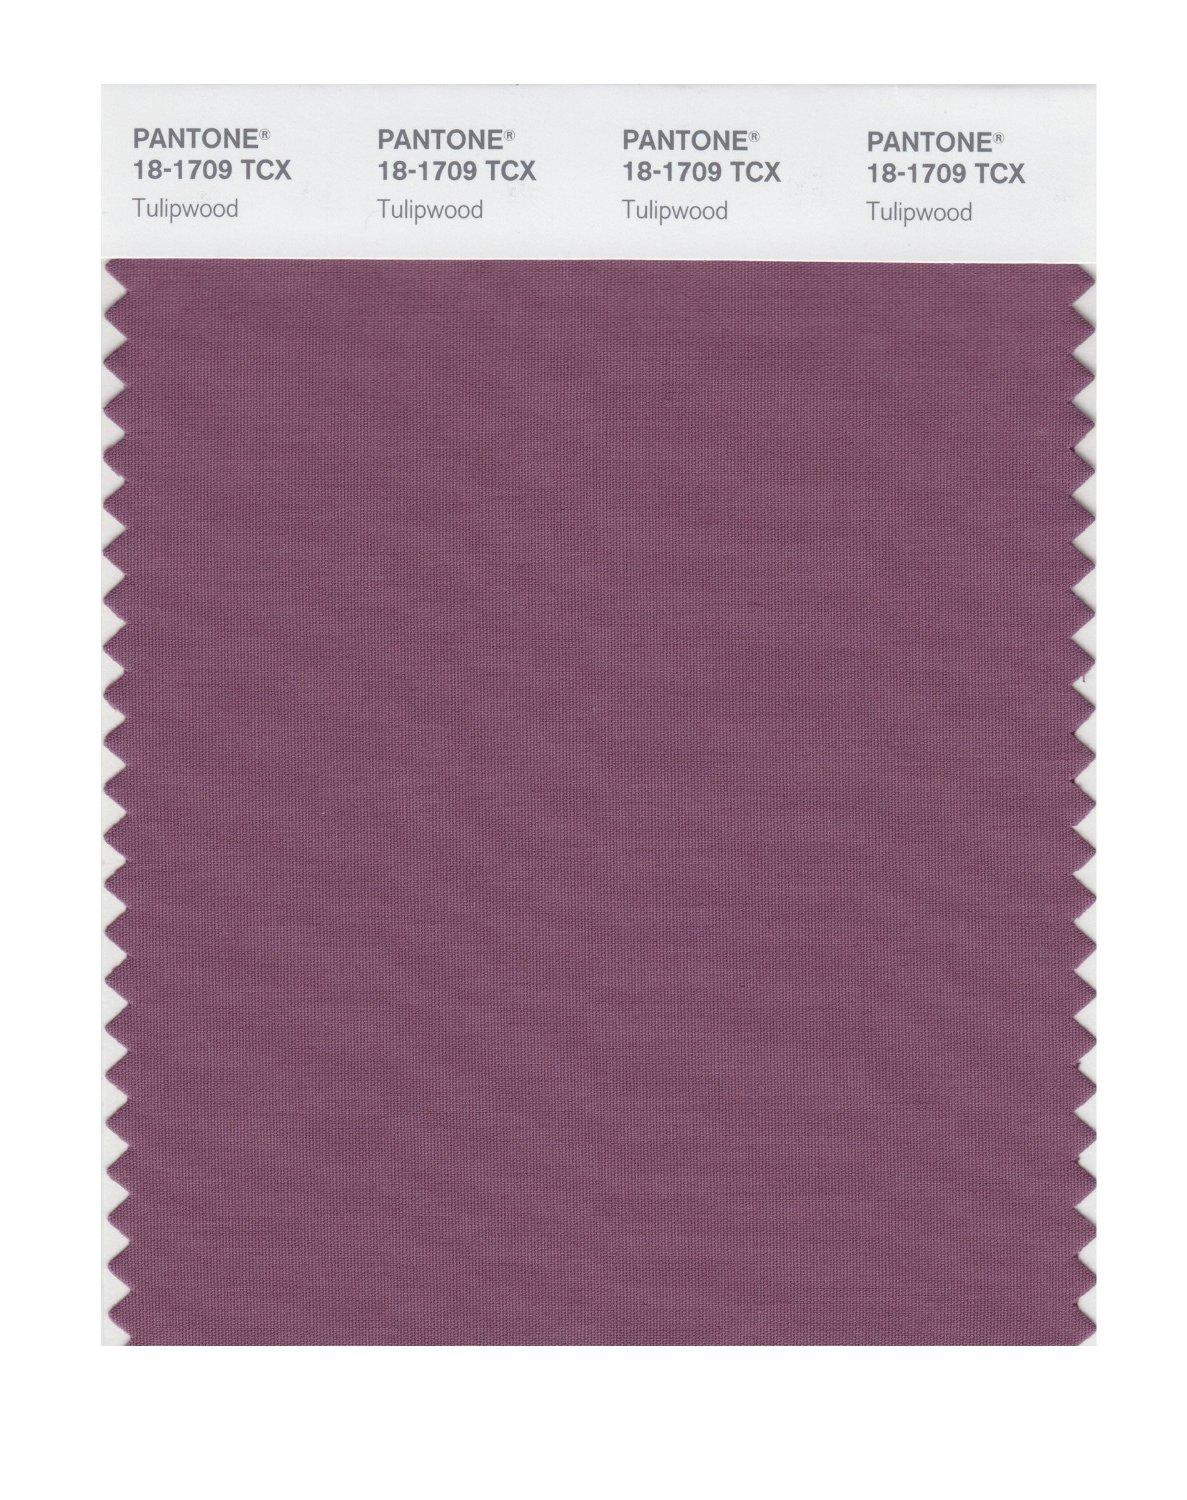 Pantone Smart Swatch 18-1709 Tulipwood